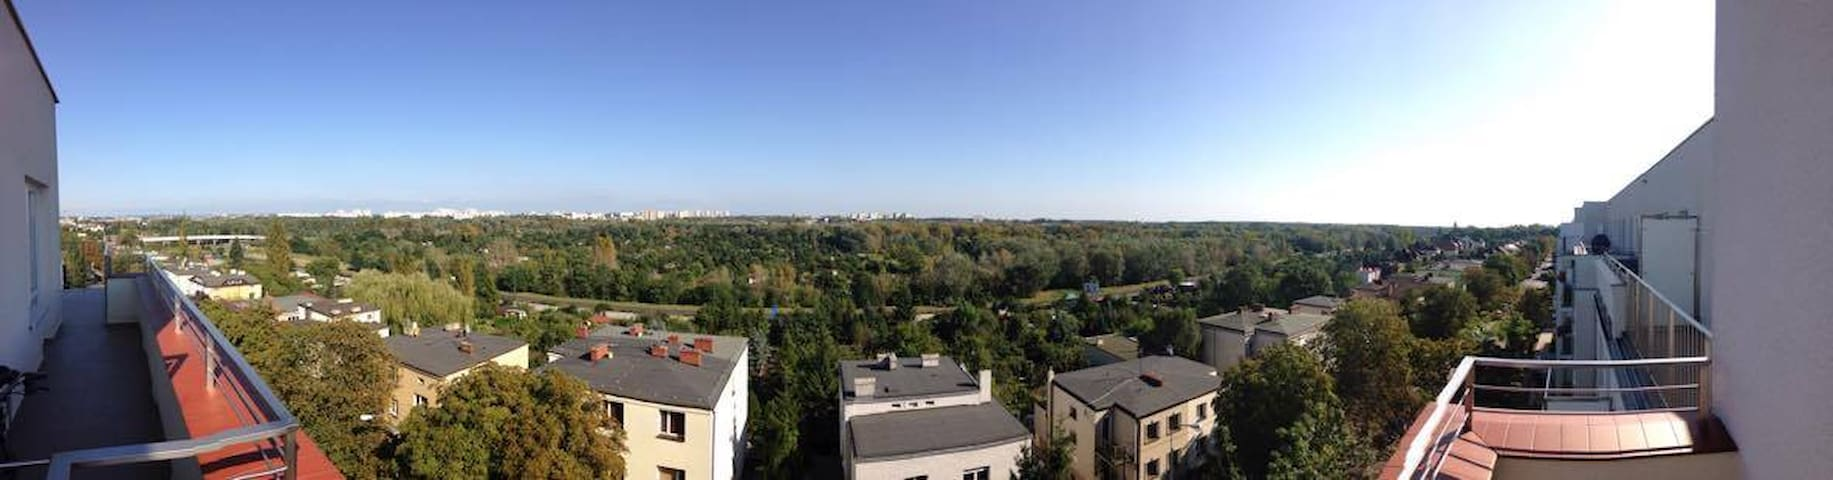 Lux/Comfort Apartment in Poznan with Gorgeous View - Poznaň - Byt